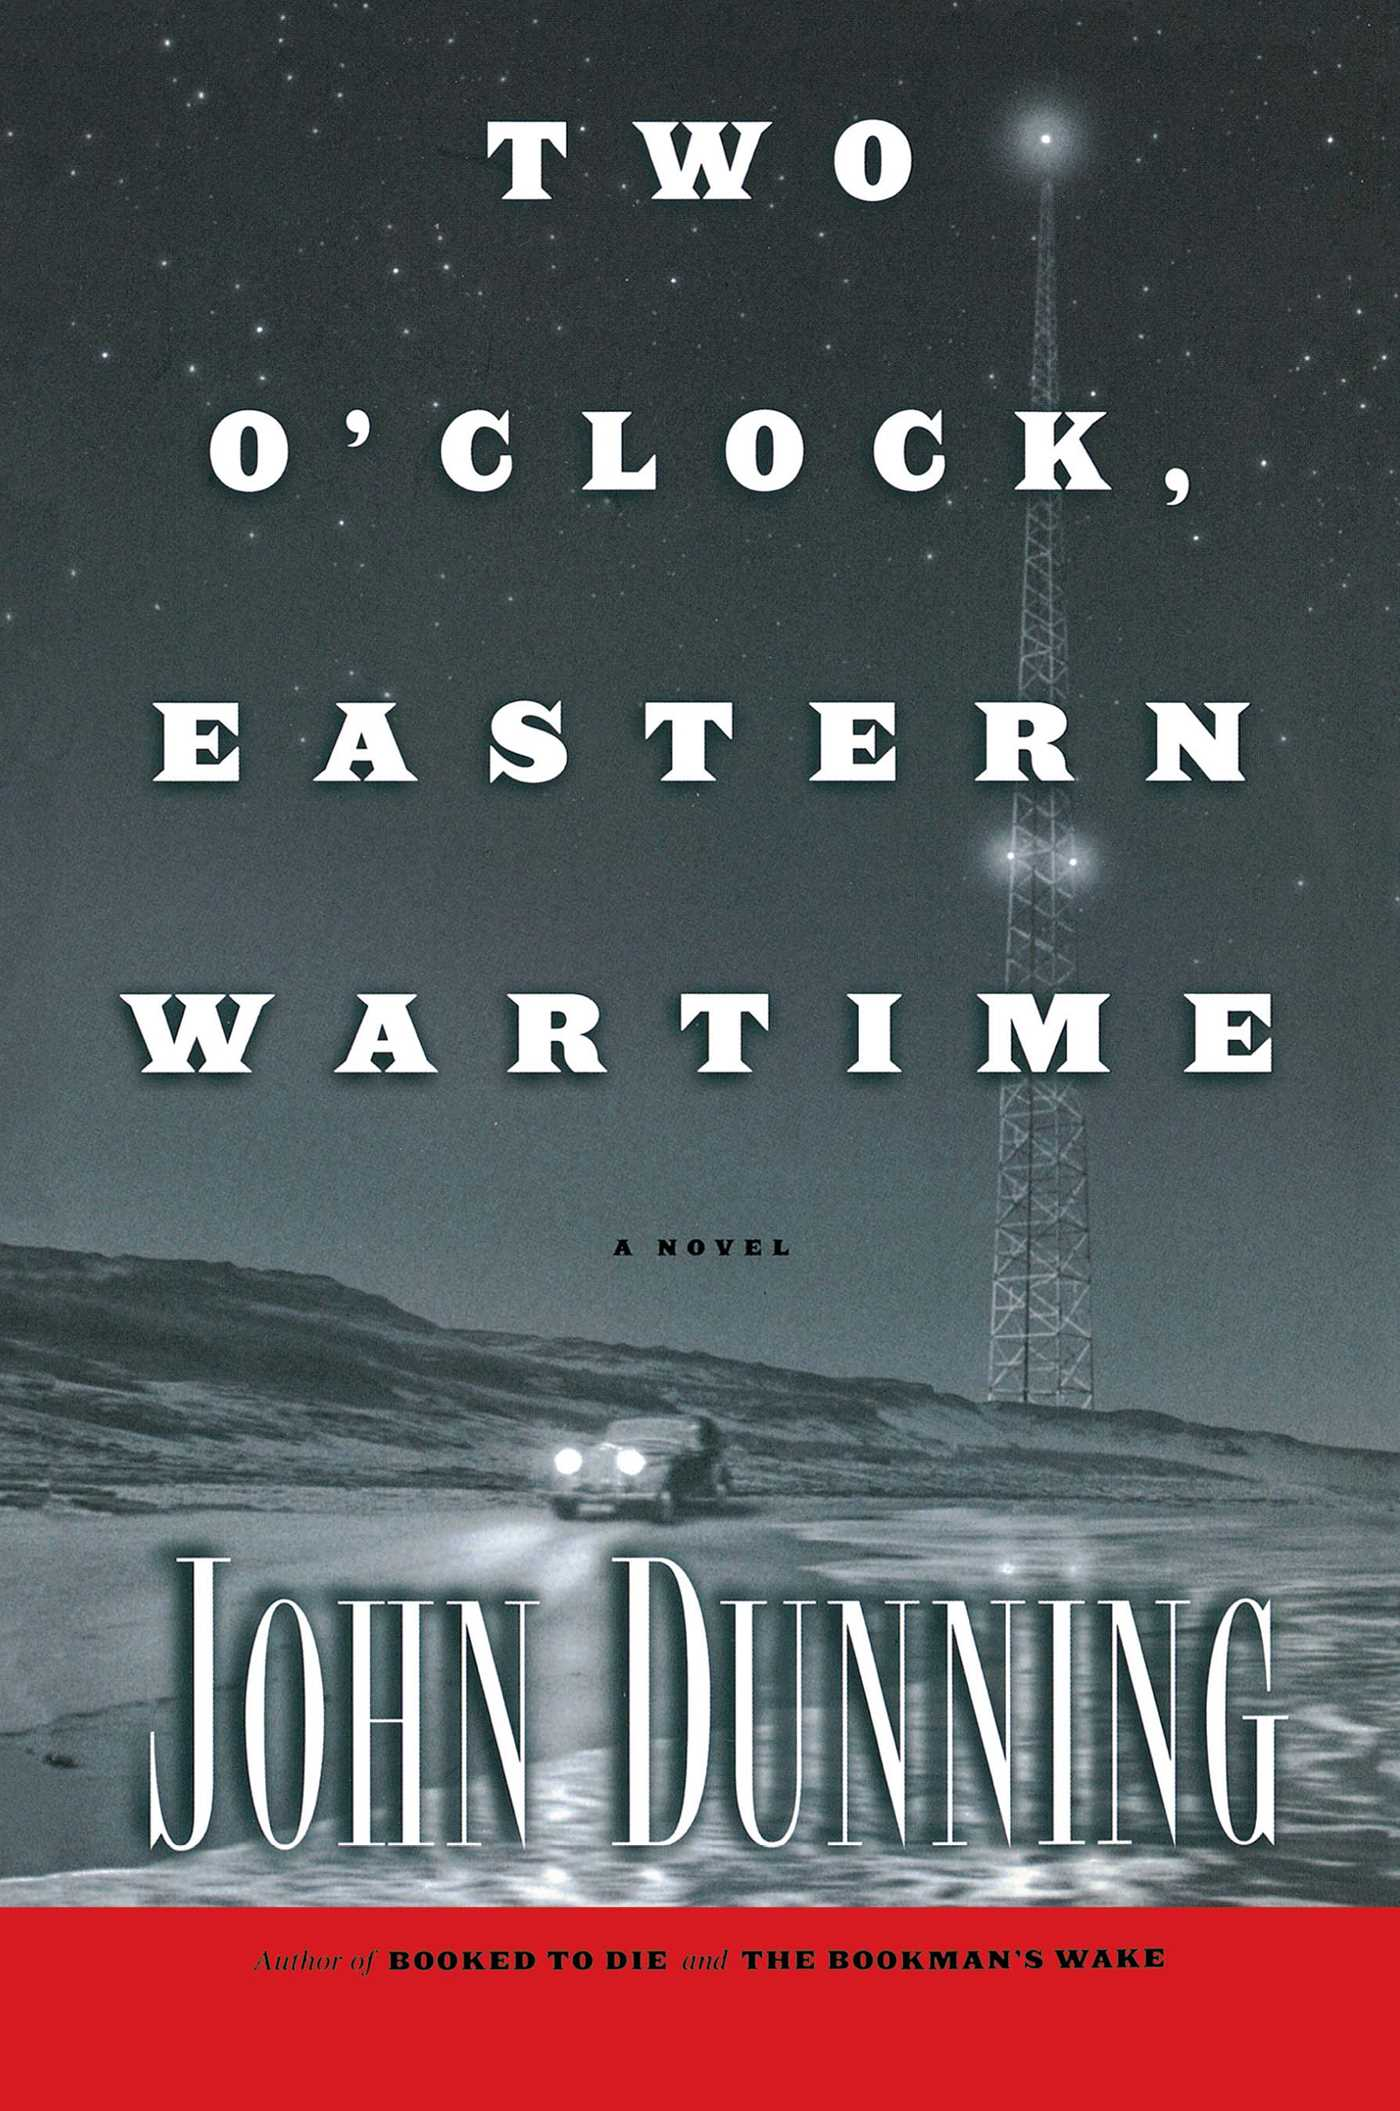 Two-oclock-eastern-wartime-9781439171530_hr